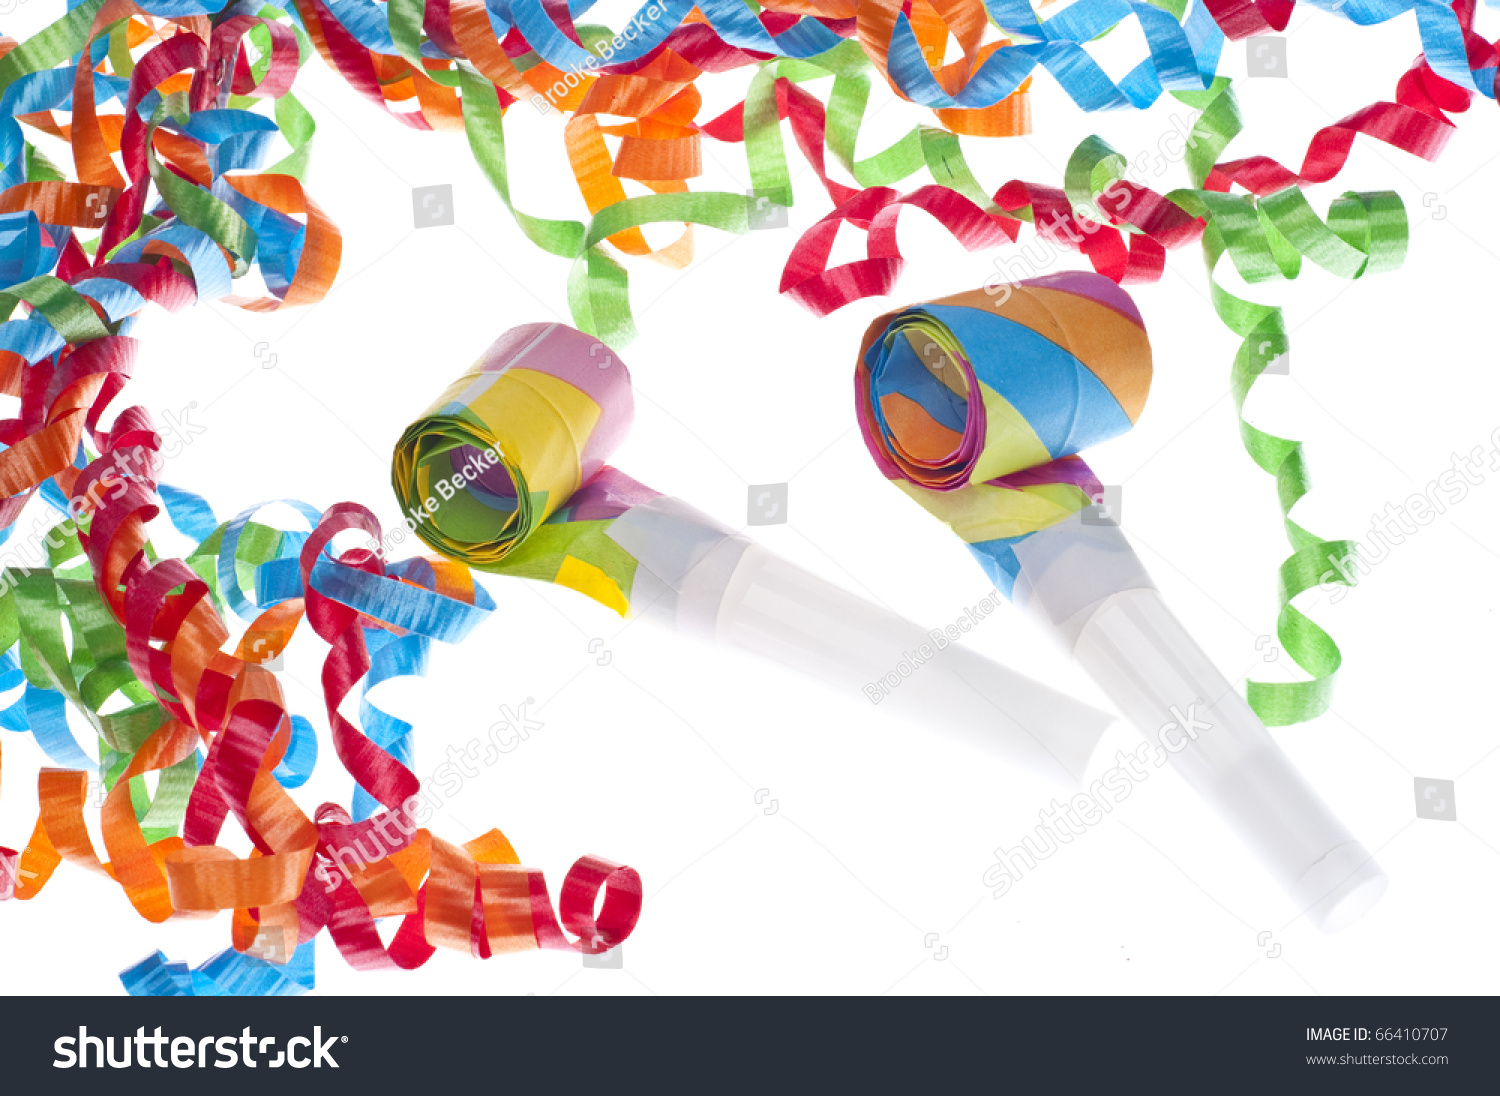 new year party concept with streamers and noise makers on white